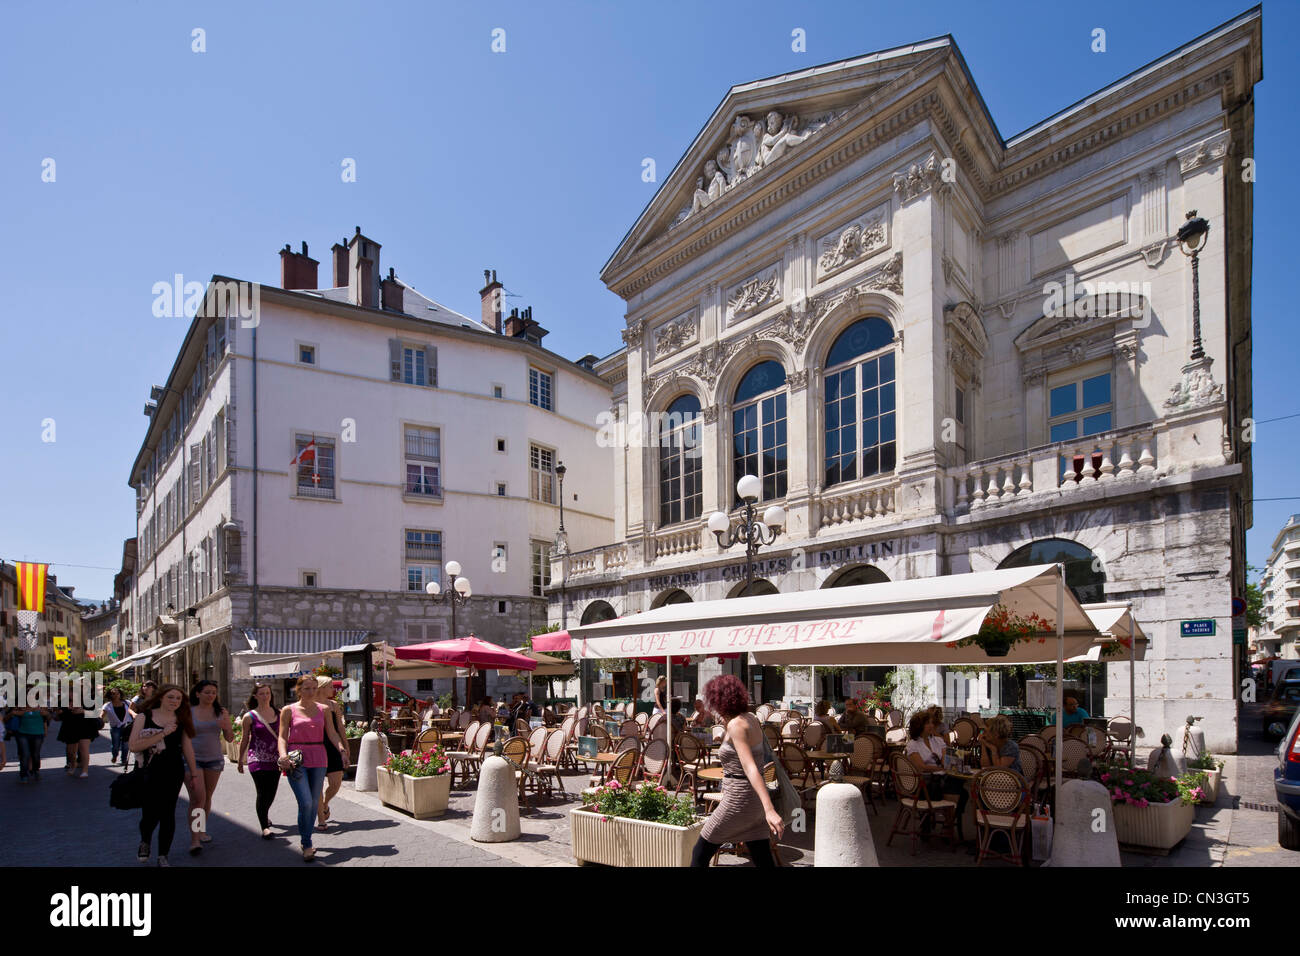 france savoie chambery theatre charles dullin in place and stock photo royalty free image. Black Bedroom Furniture Sets. Home Design Ideas